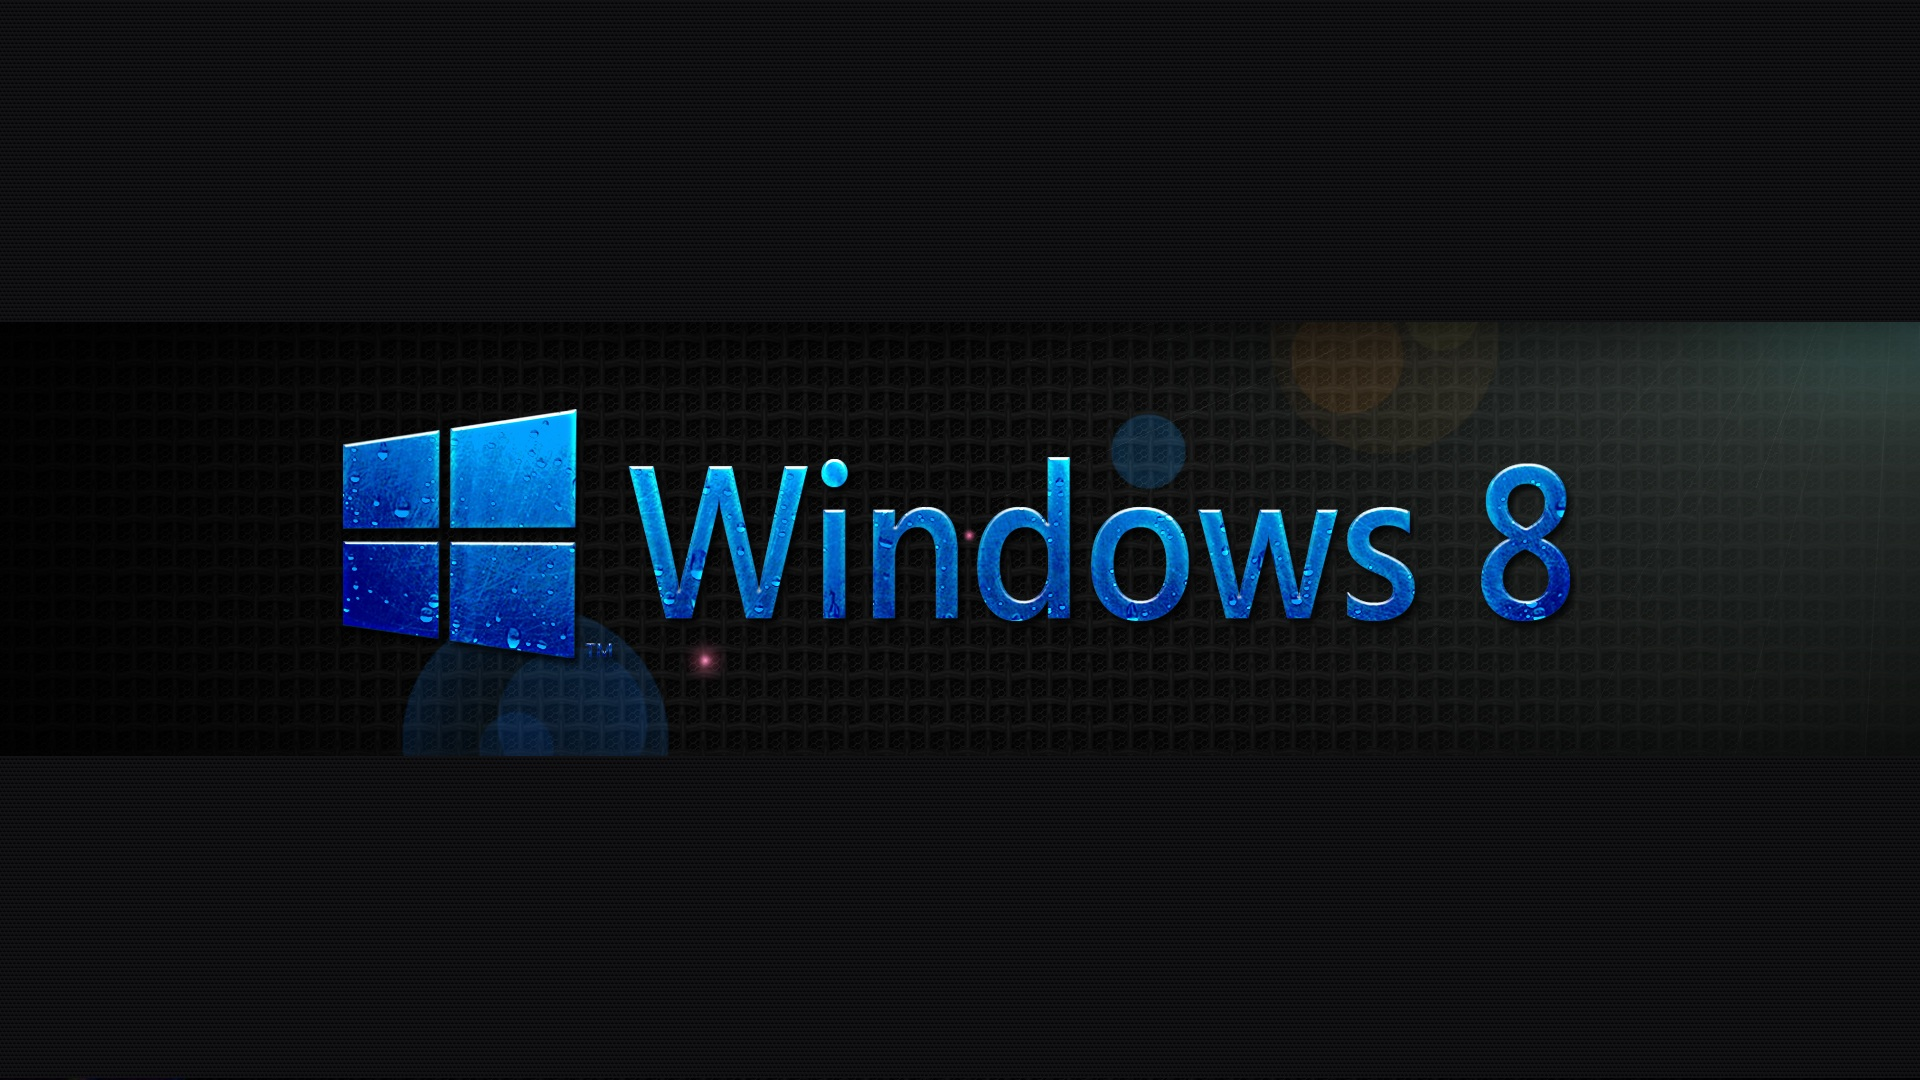 Blue Windows 8 in Black Wallpaper